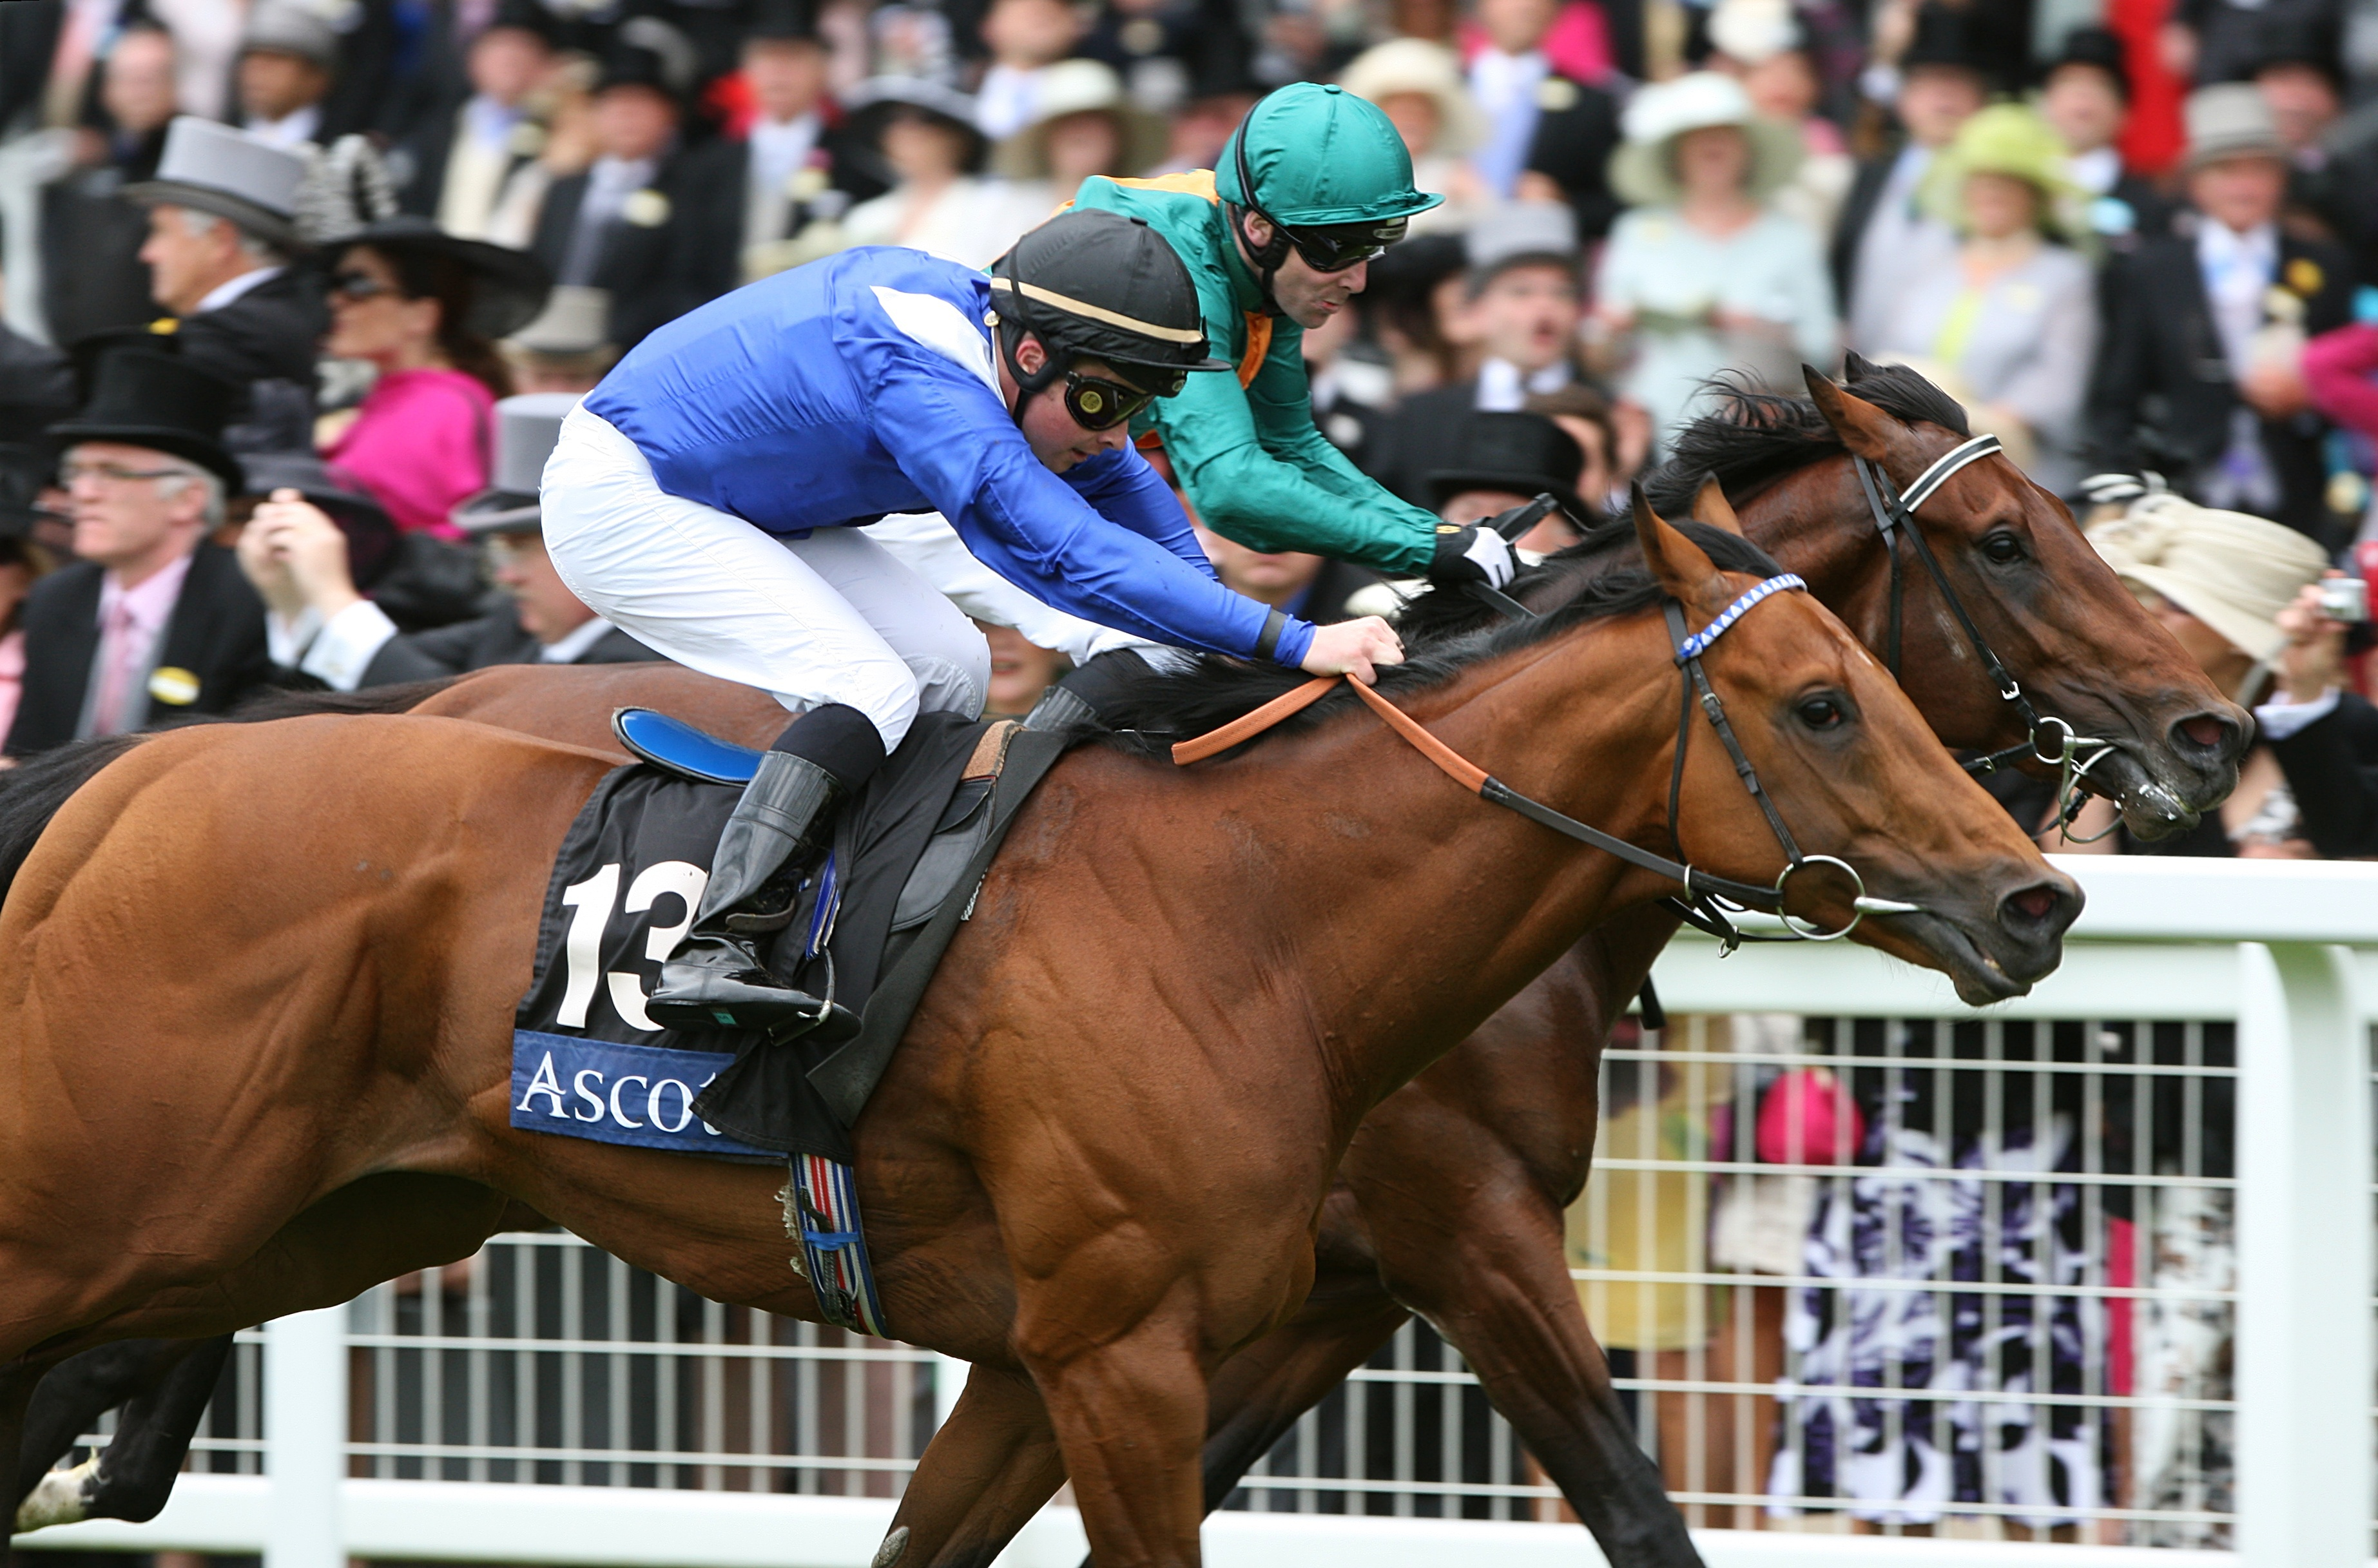 Tadhg O'Shea enjoyed Royal Ascot glory with Ouqba in 2009